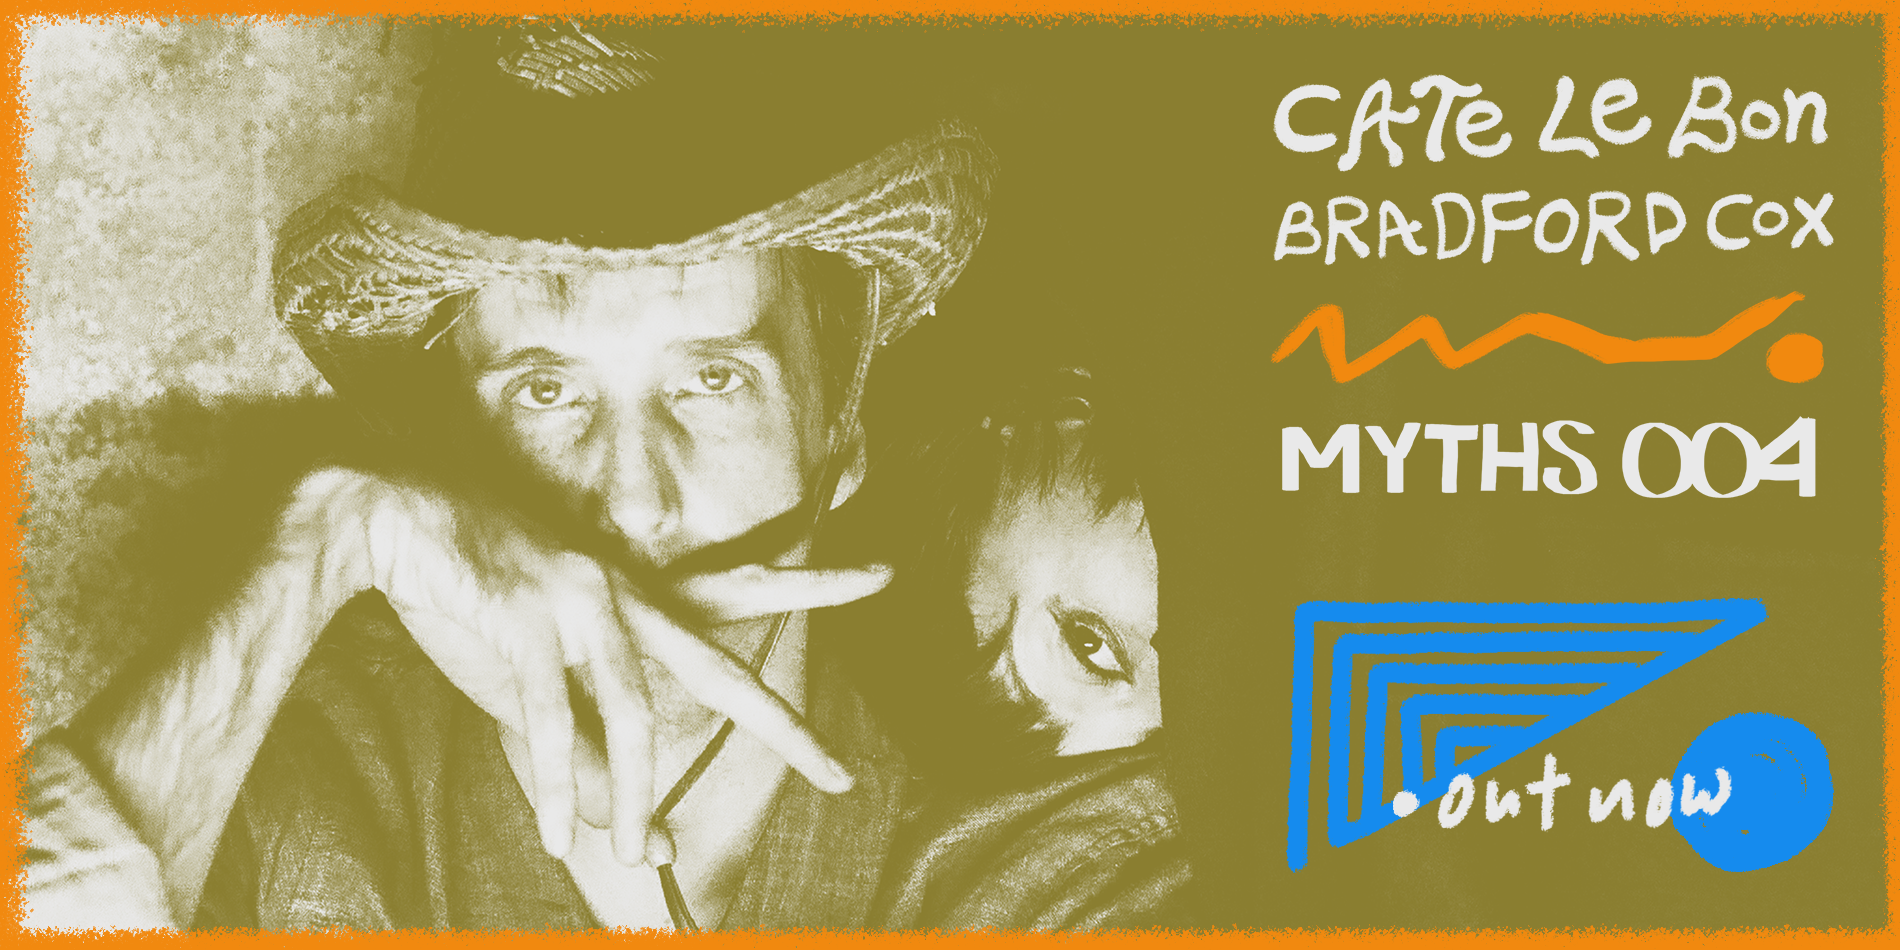 Cate Le Bon and Bradford Cox Myths 004 Out Now Banner